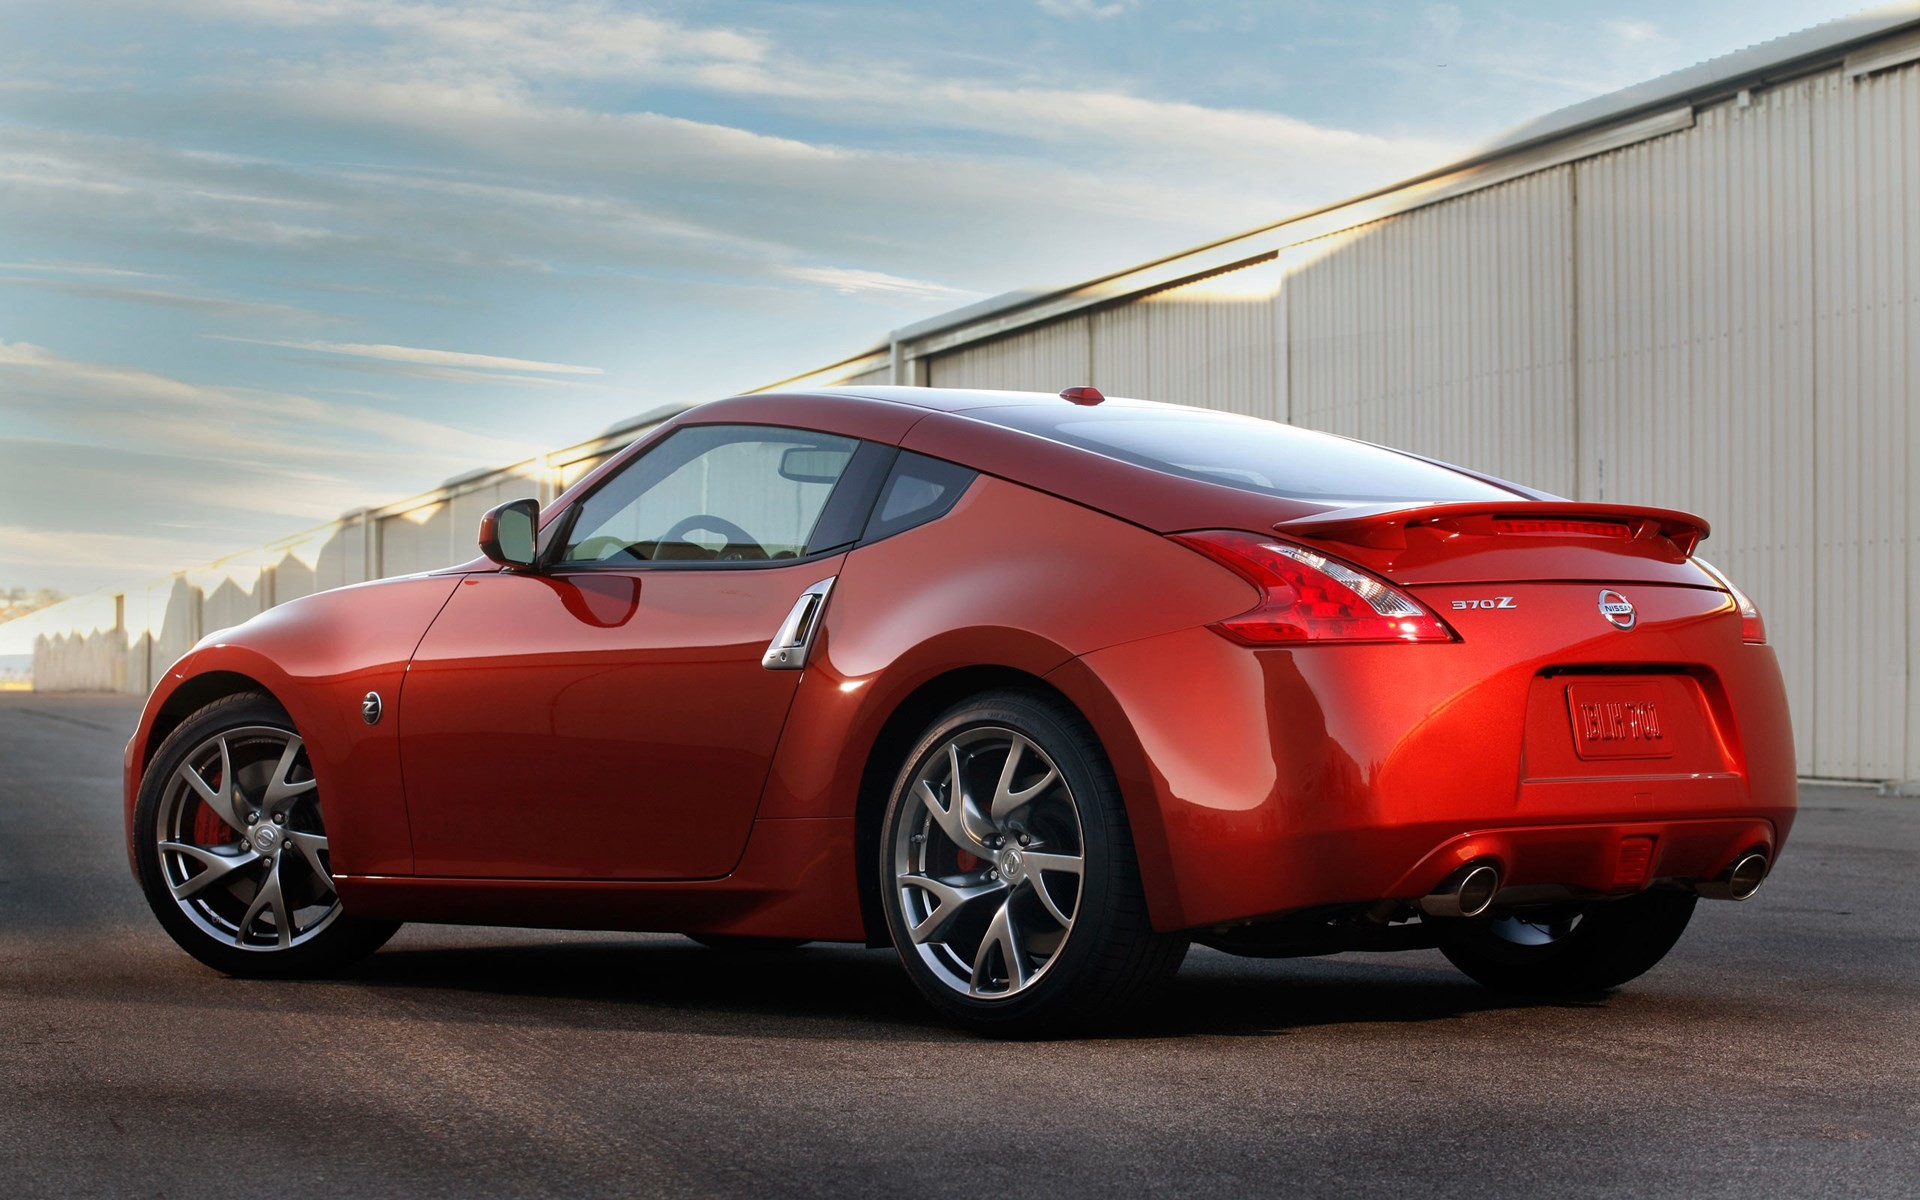 nissan 350z backround full hd by Farrin Birds (2017-03-23)